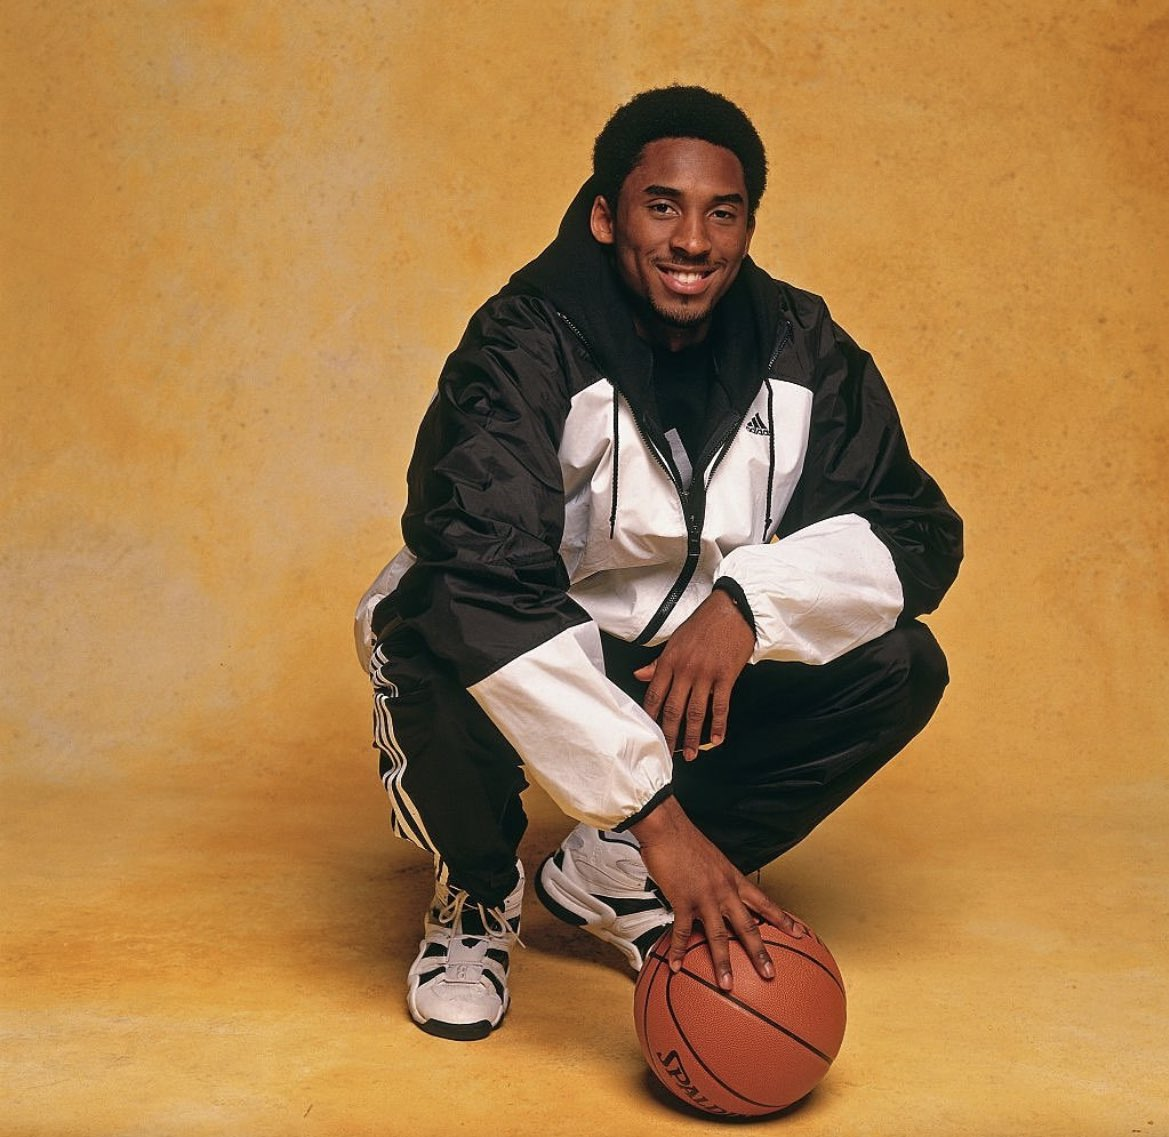 '98 All Star Weekend.  High school to the league. 💫 https://t.co/2Ww5sIbMQR